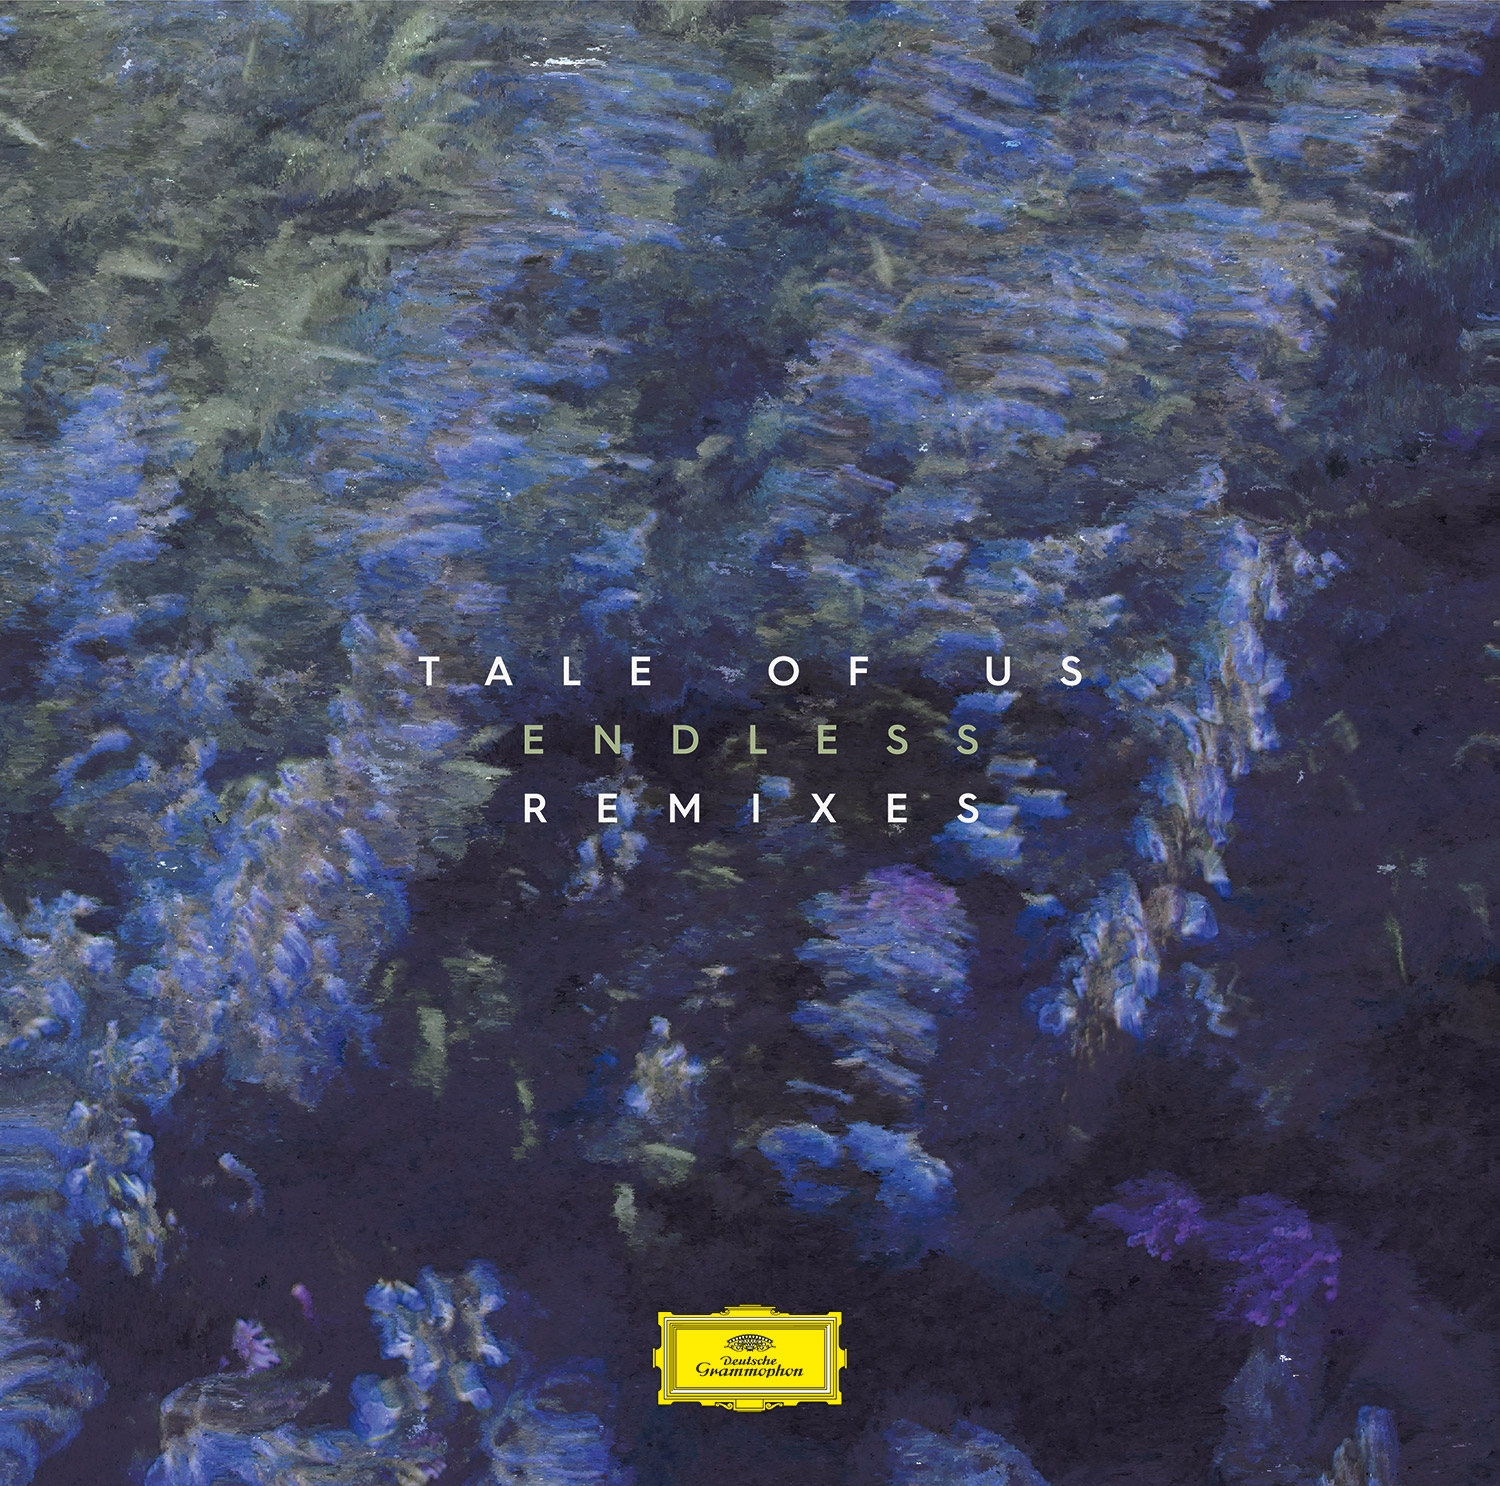 Tale of Us - Endless Remixes (Deutsche Grammophon)